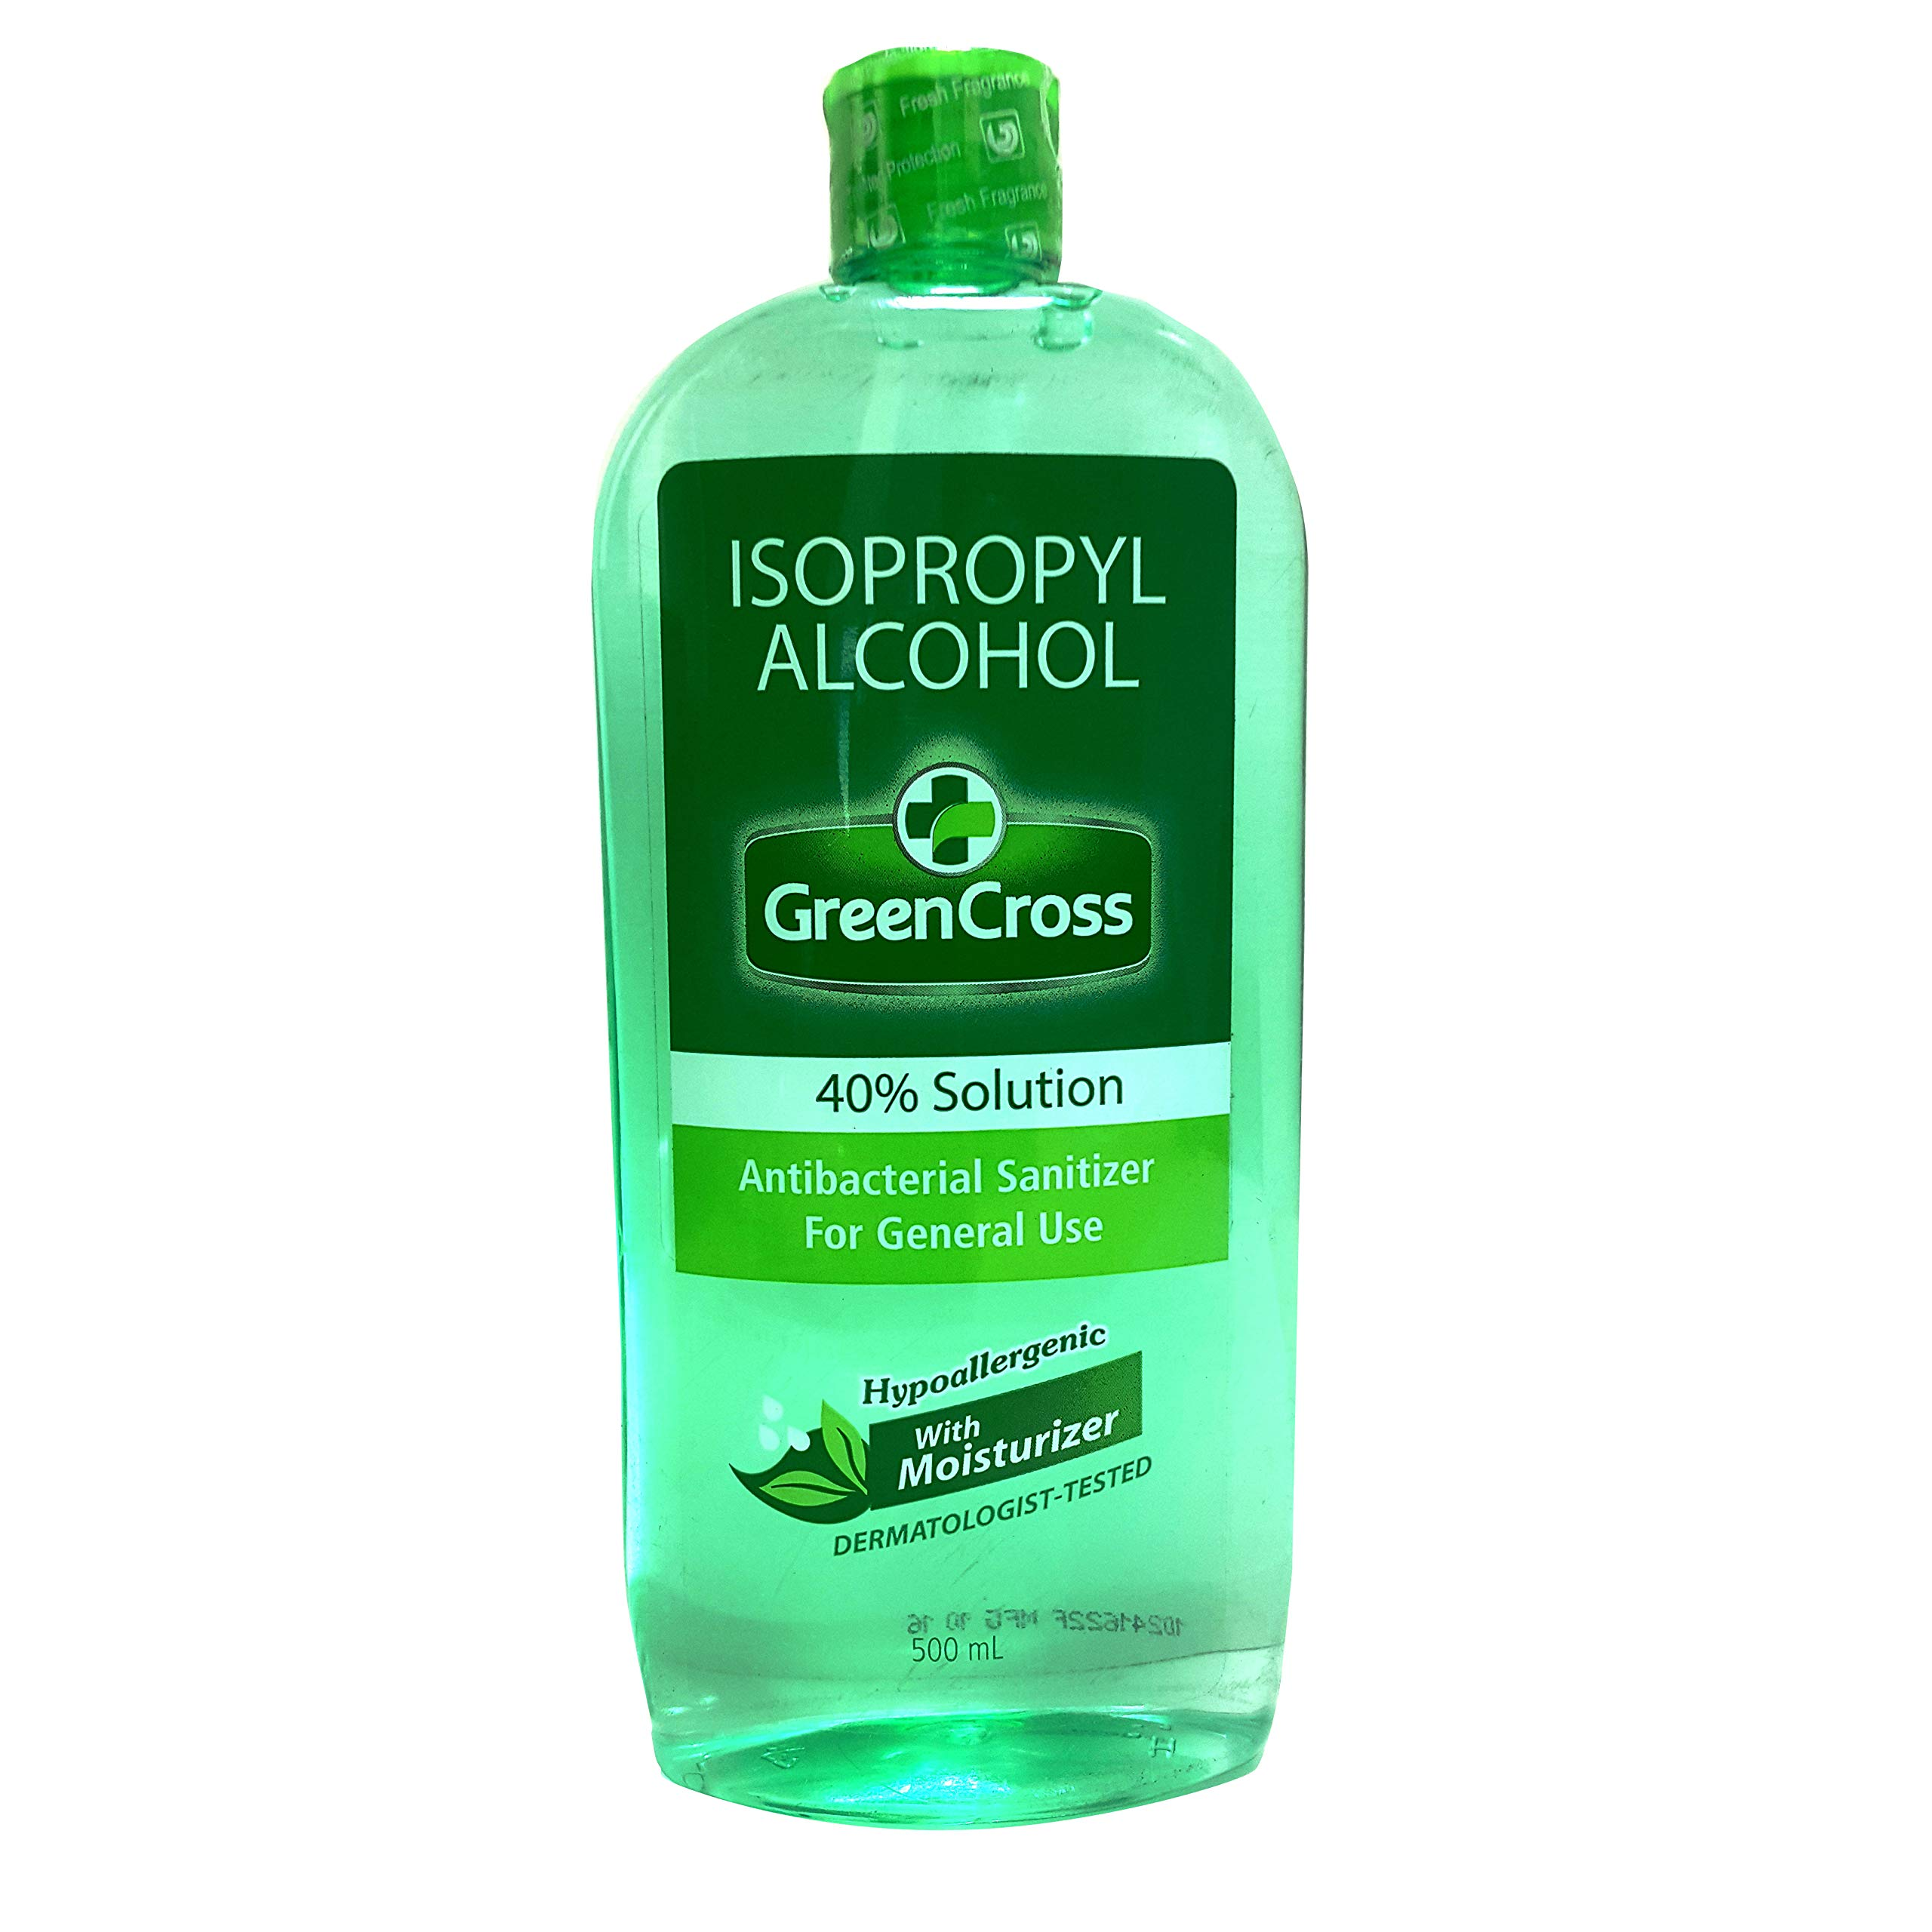 Green Cross Isopropyl Alcohol 40% Solution With Moisturizer, 500ml